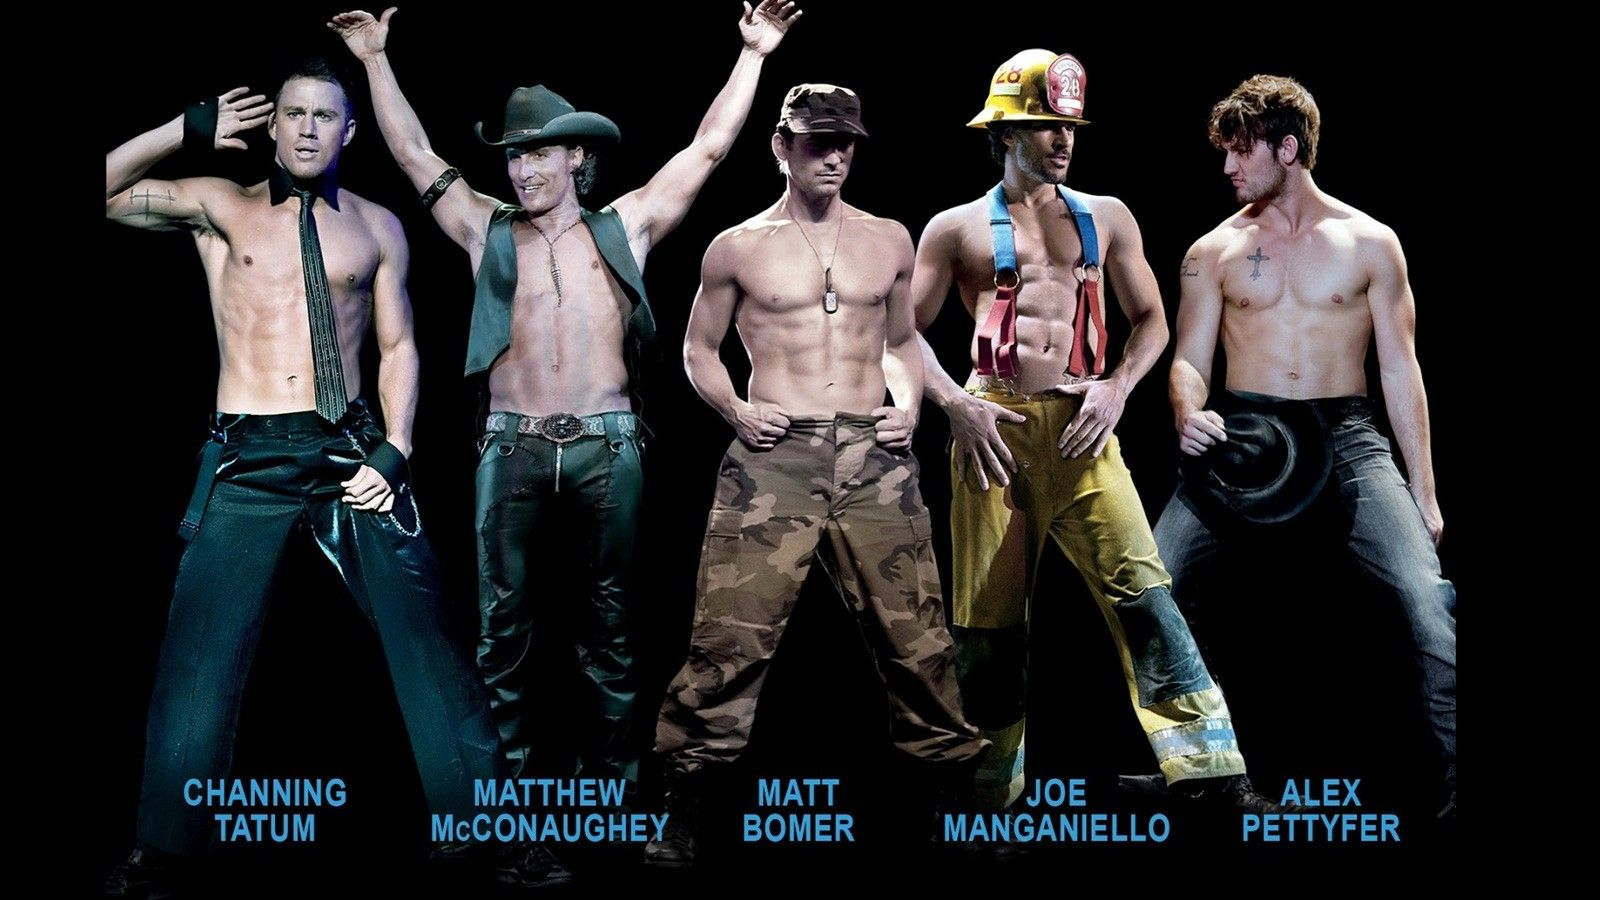 Wohnzimmerz Wallpaper Xxl With Magic Mike Xxl Computer Wallpapers 1600 900 Xxl Images Wallpapers 42 Wallpapers Adorable Wallpapers Jungs